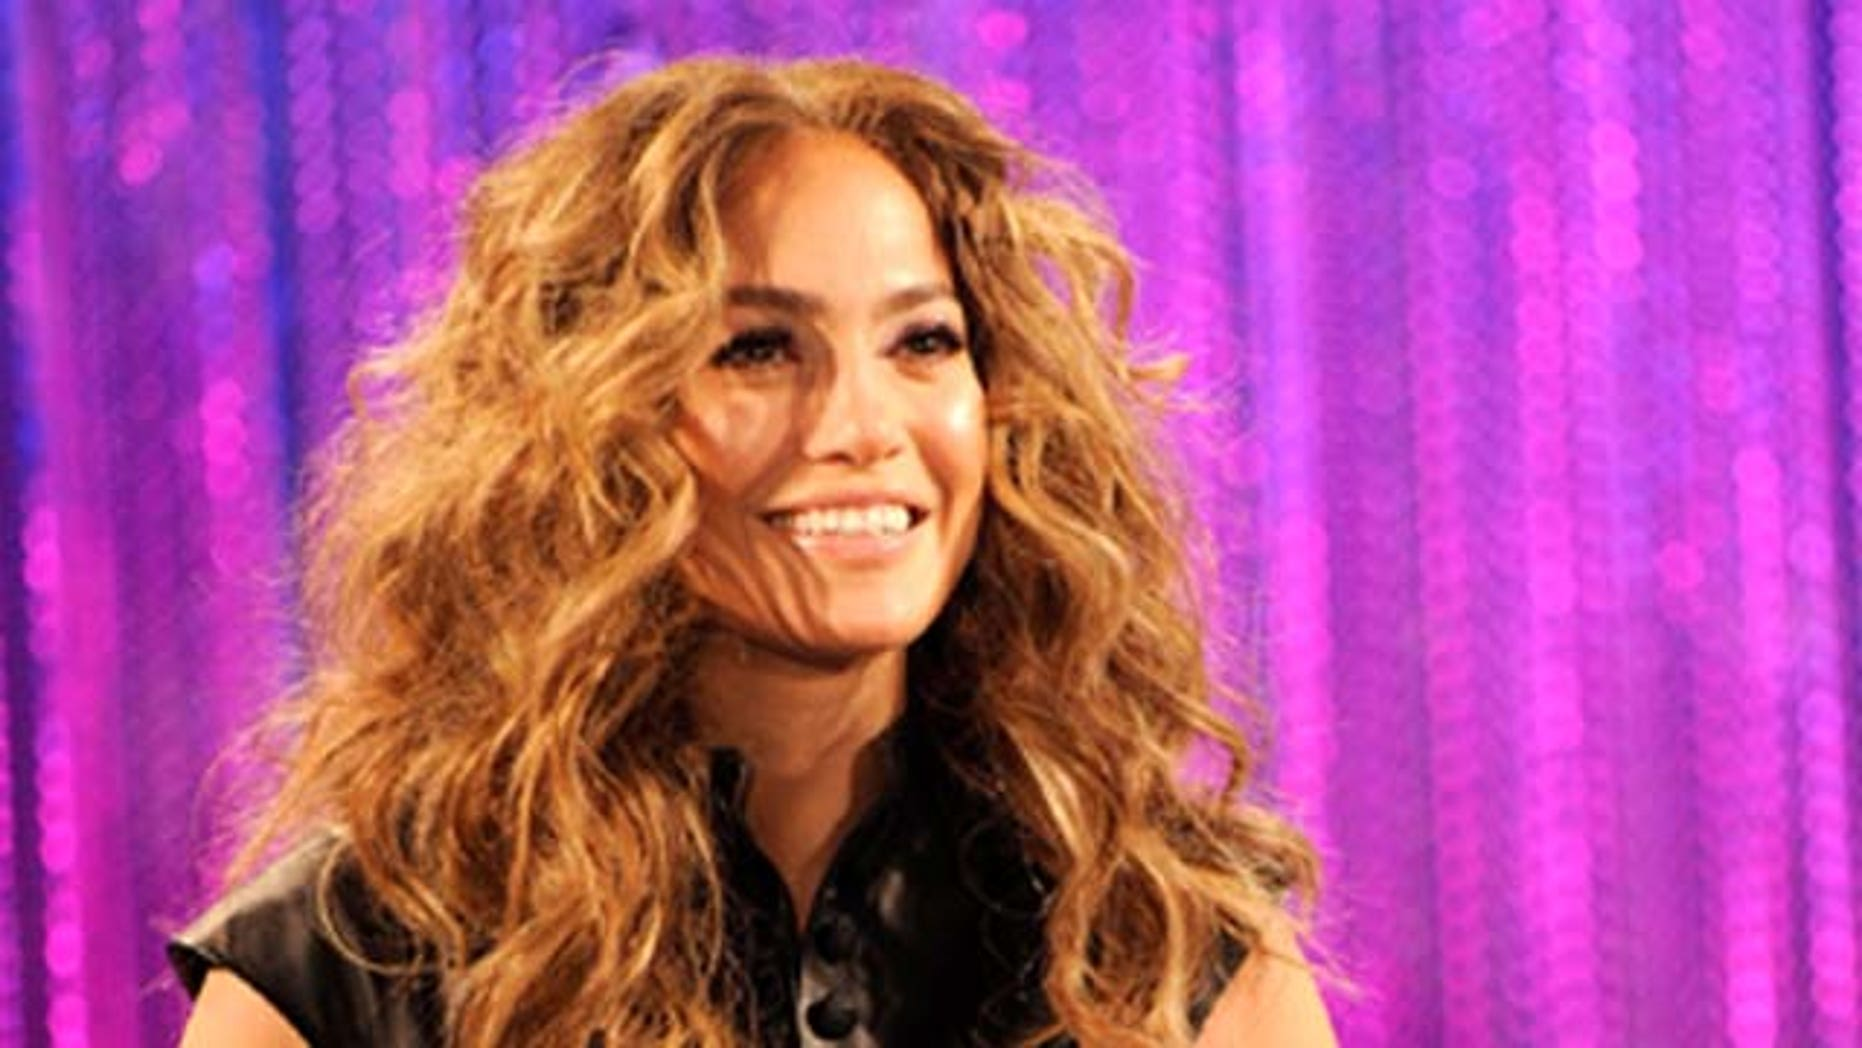 """attends Jennifer Lopez CD signing to celebrate her new album """"LOVE?"""" held at the Hard Rock Cafe Hollywood on May 3, 2011 in Hollywood, California."""